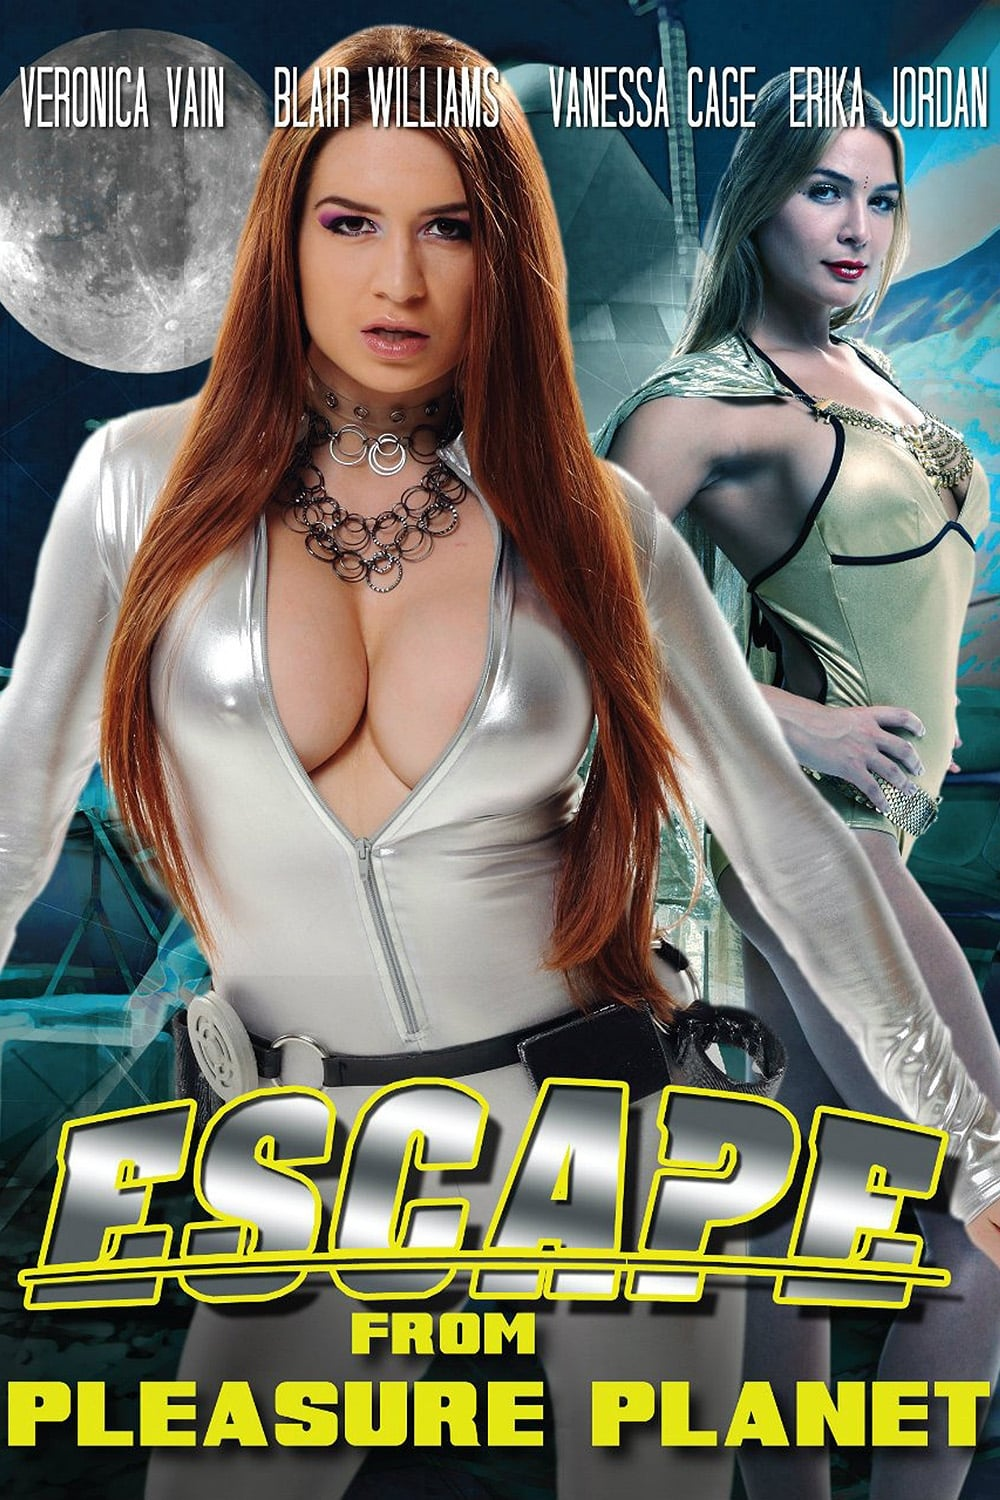 Escape from busty babe land